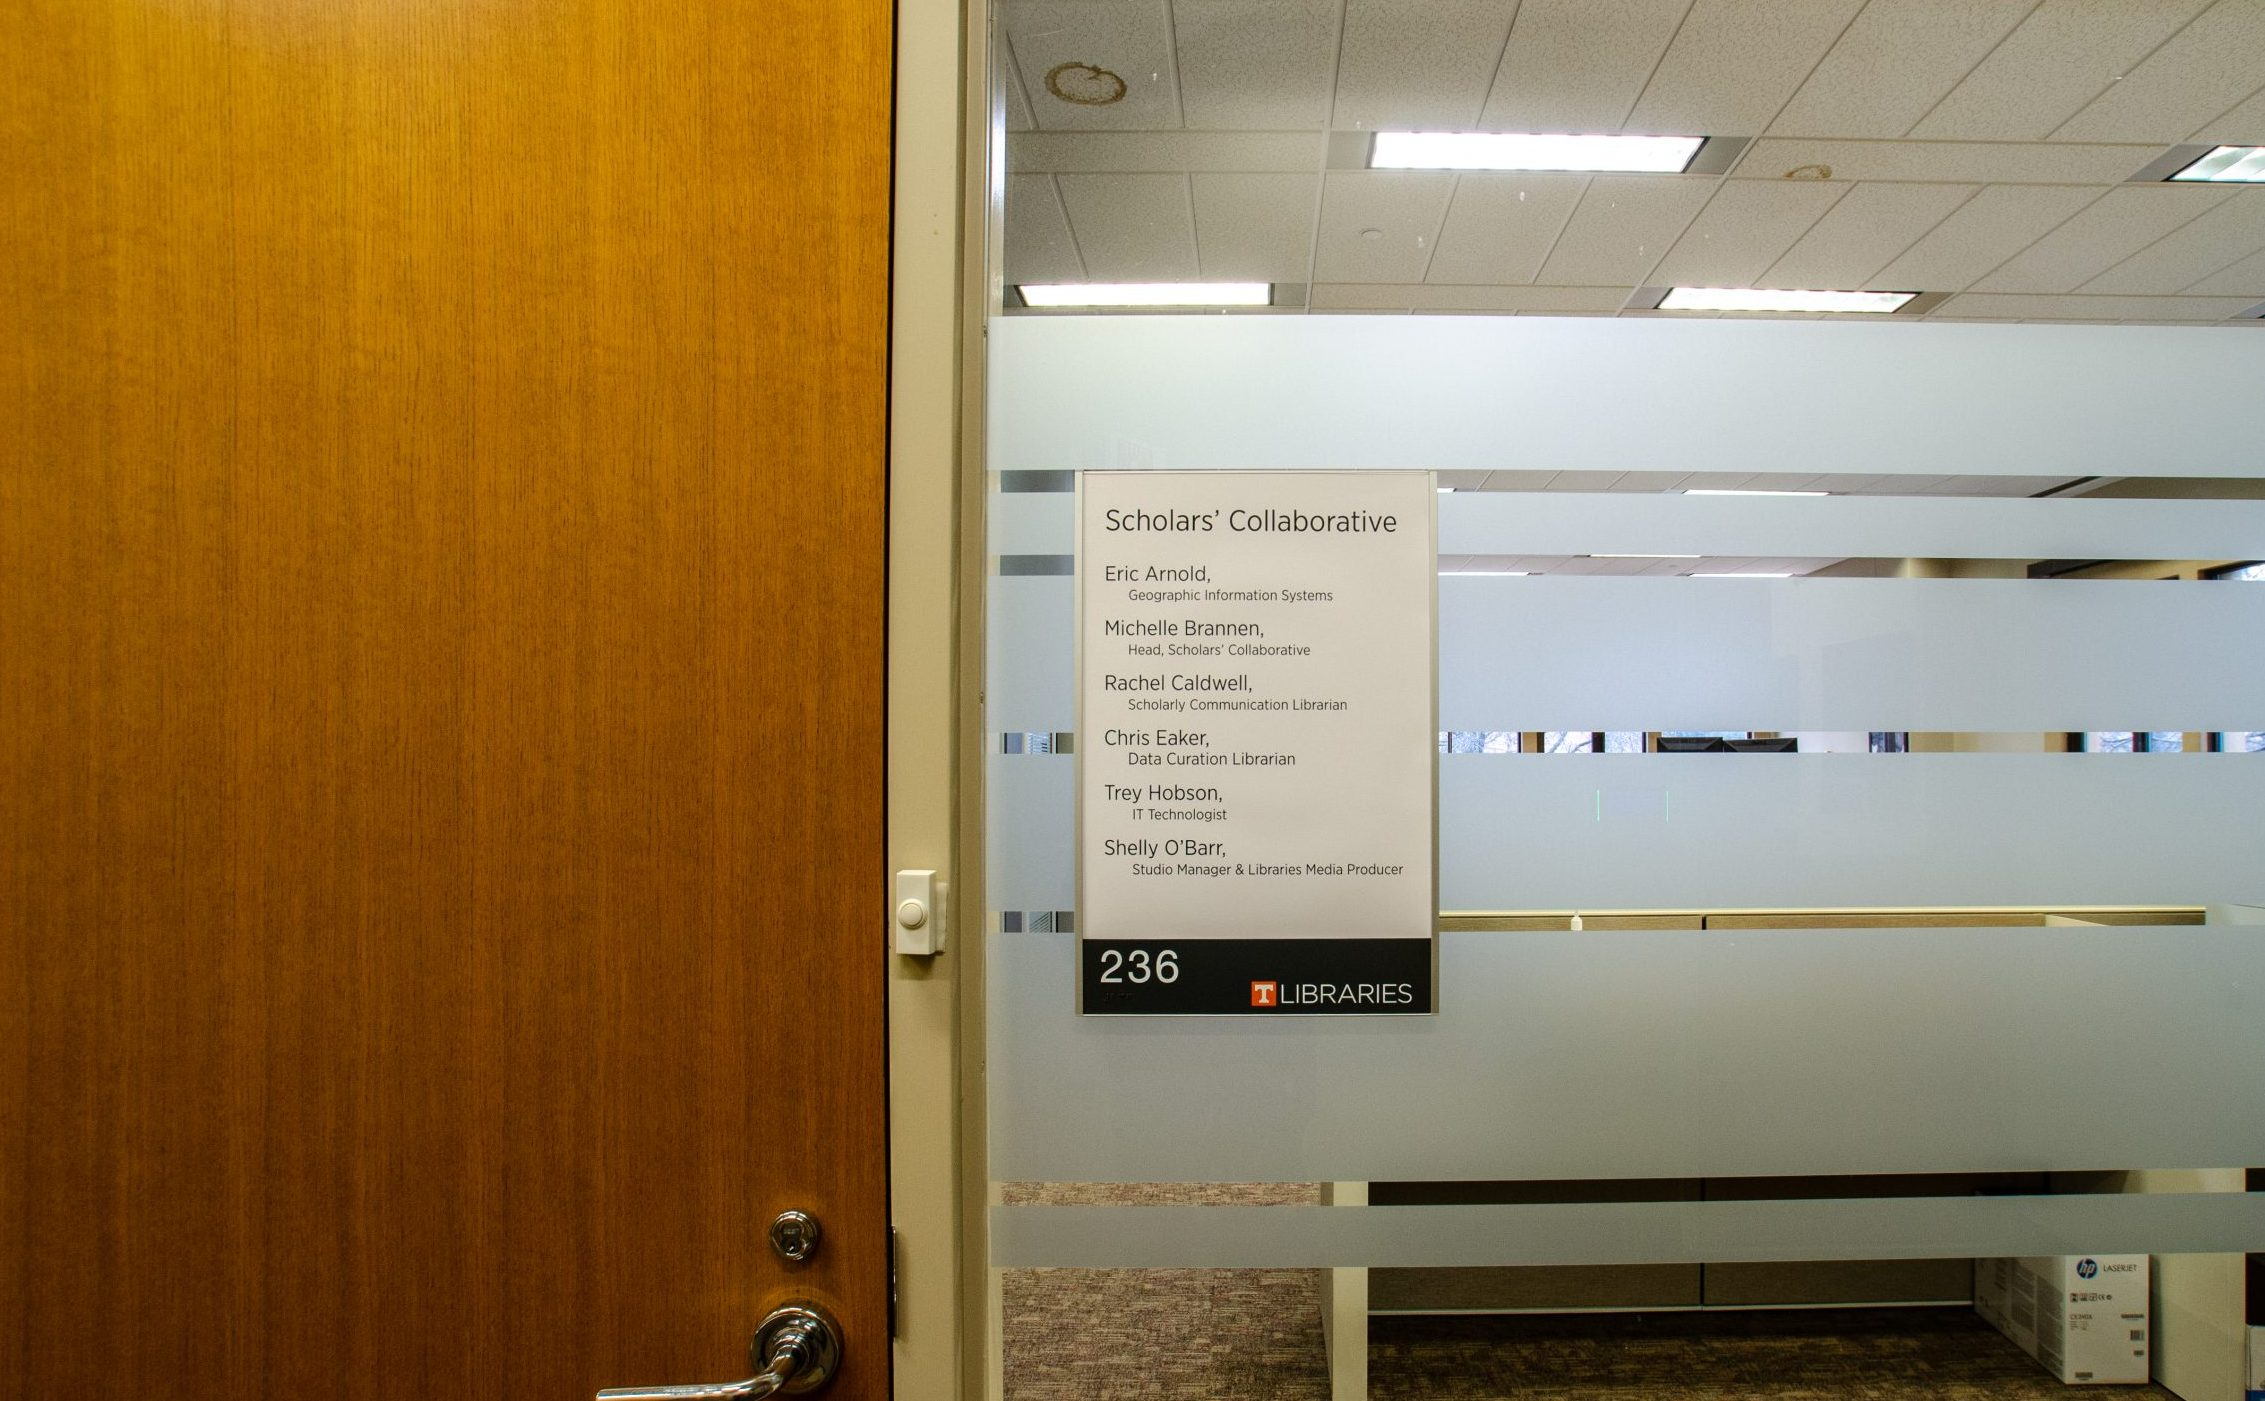 scholar's collaborative in hodges library at ut knoxville